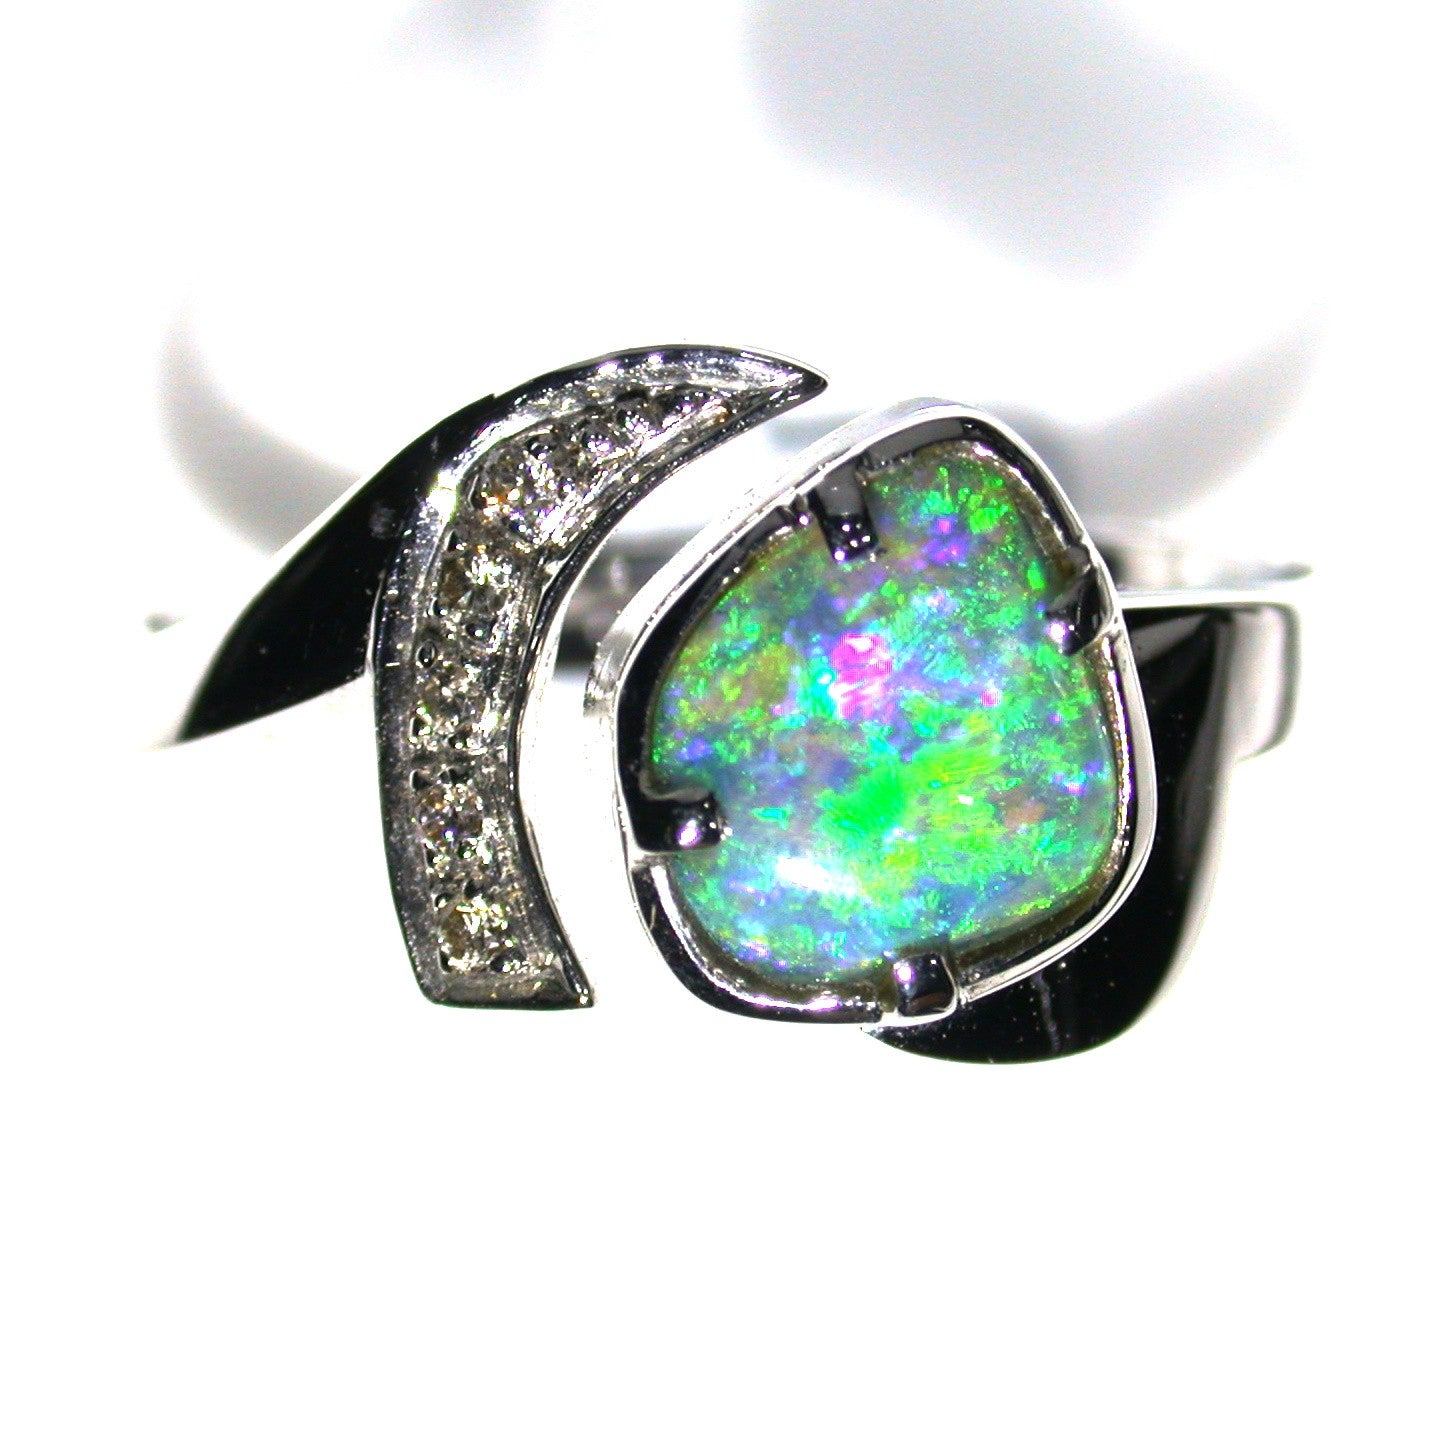 Bright Green solid boulder opal 18k Ring